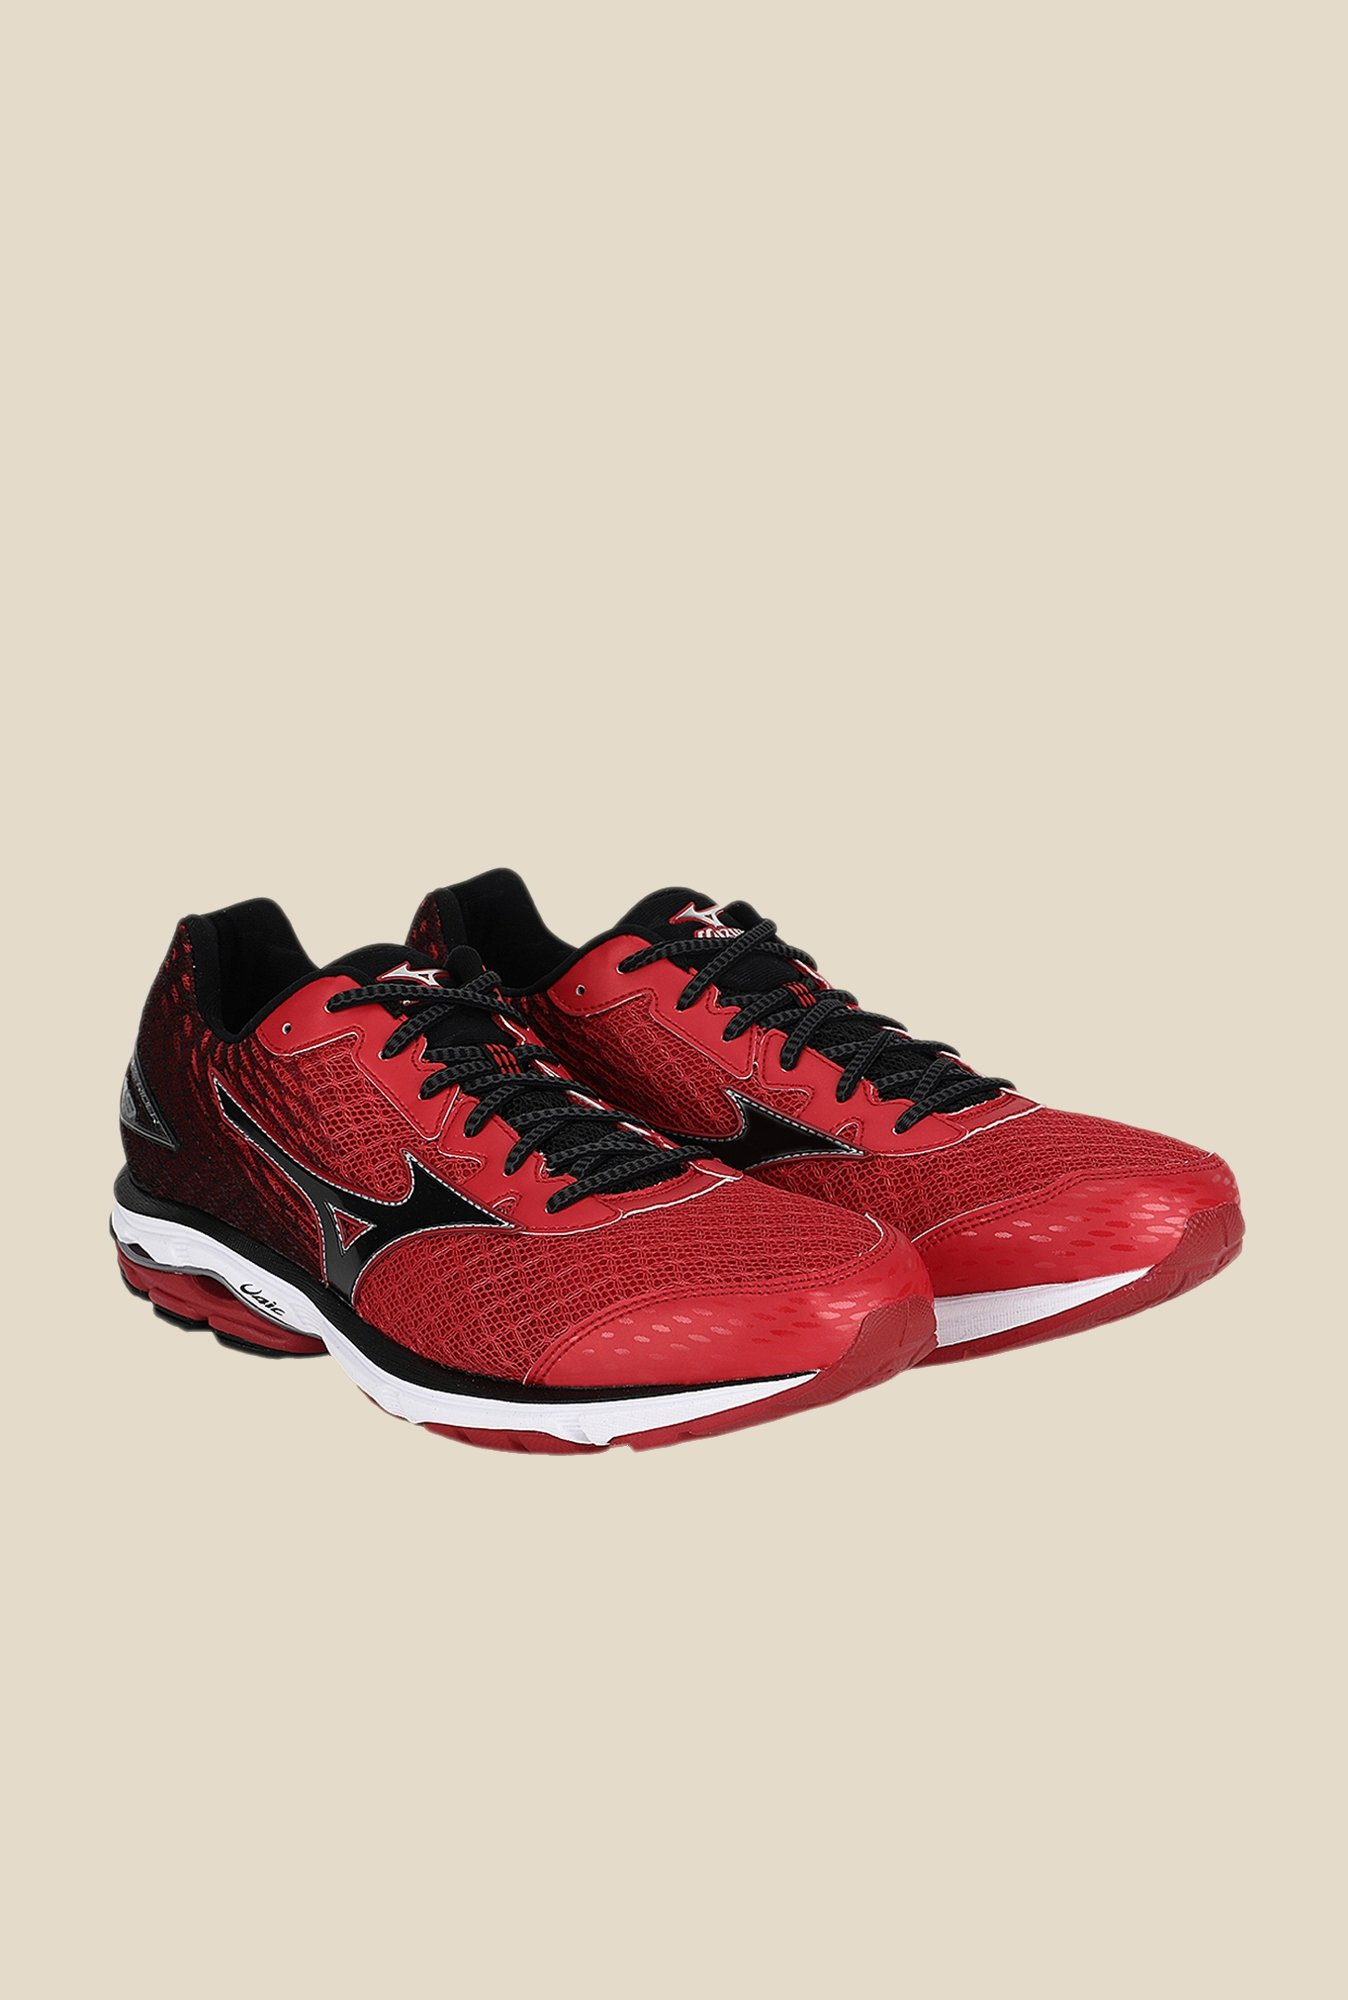 Mizuno Wave Rider 19 Red & Black Running Shoes